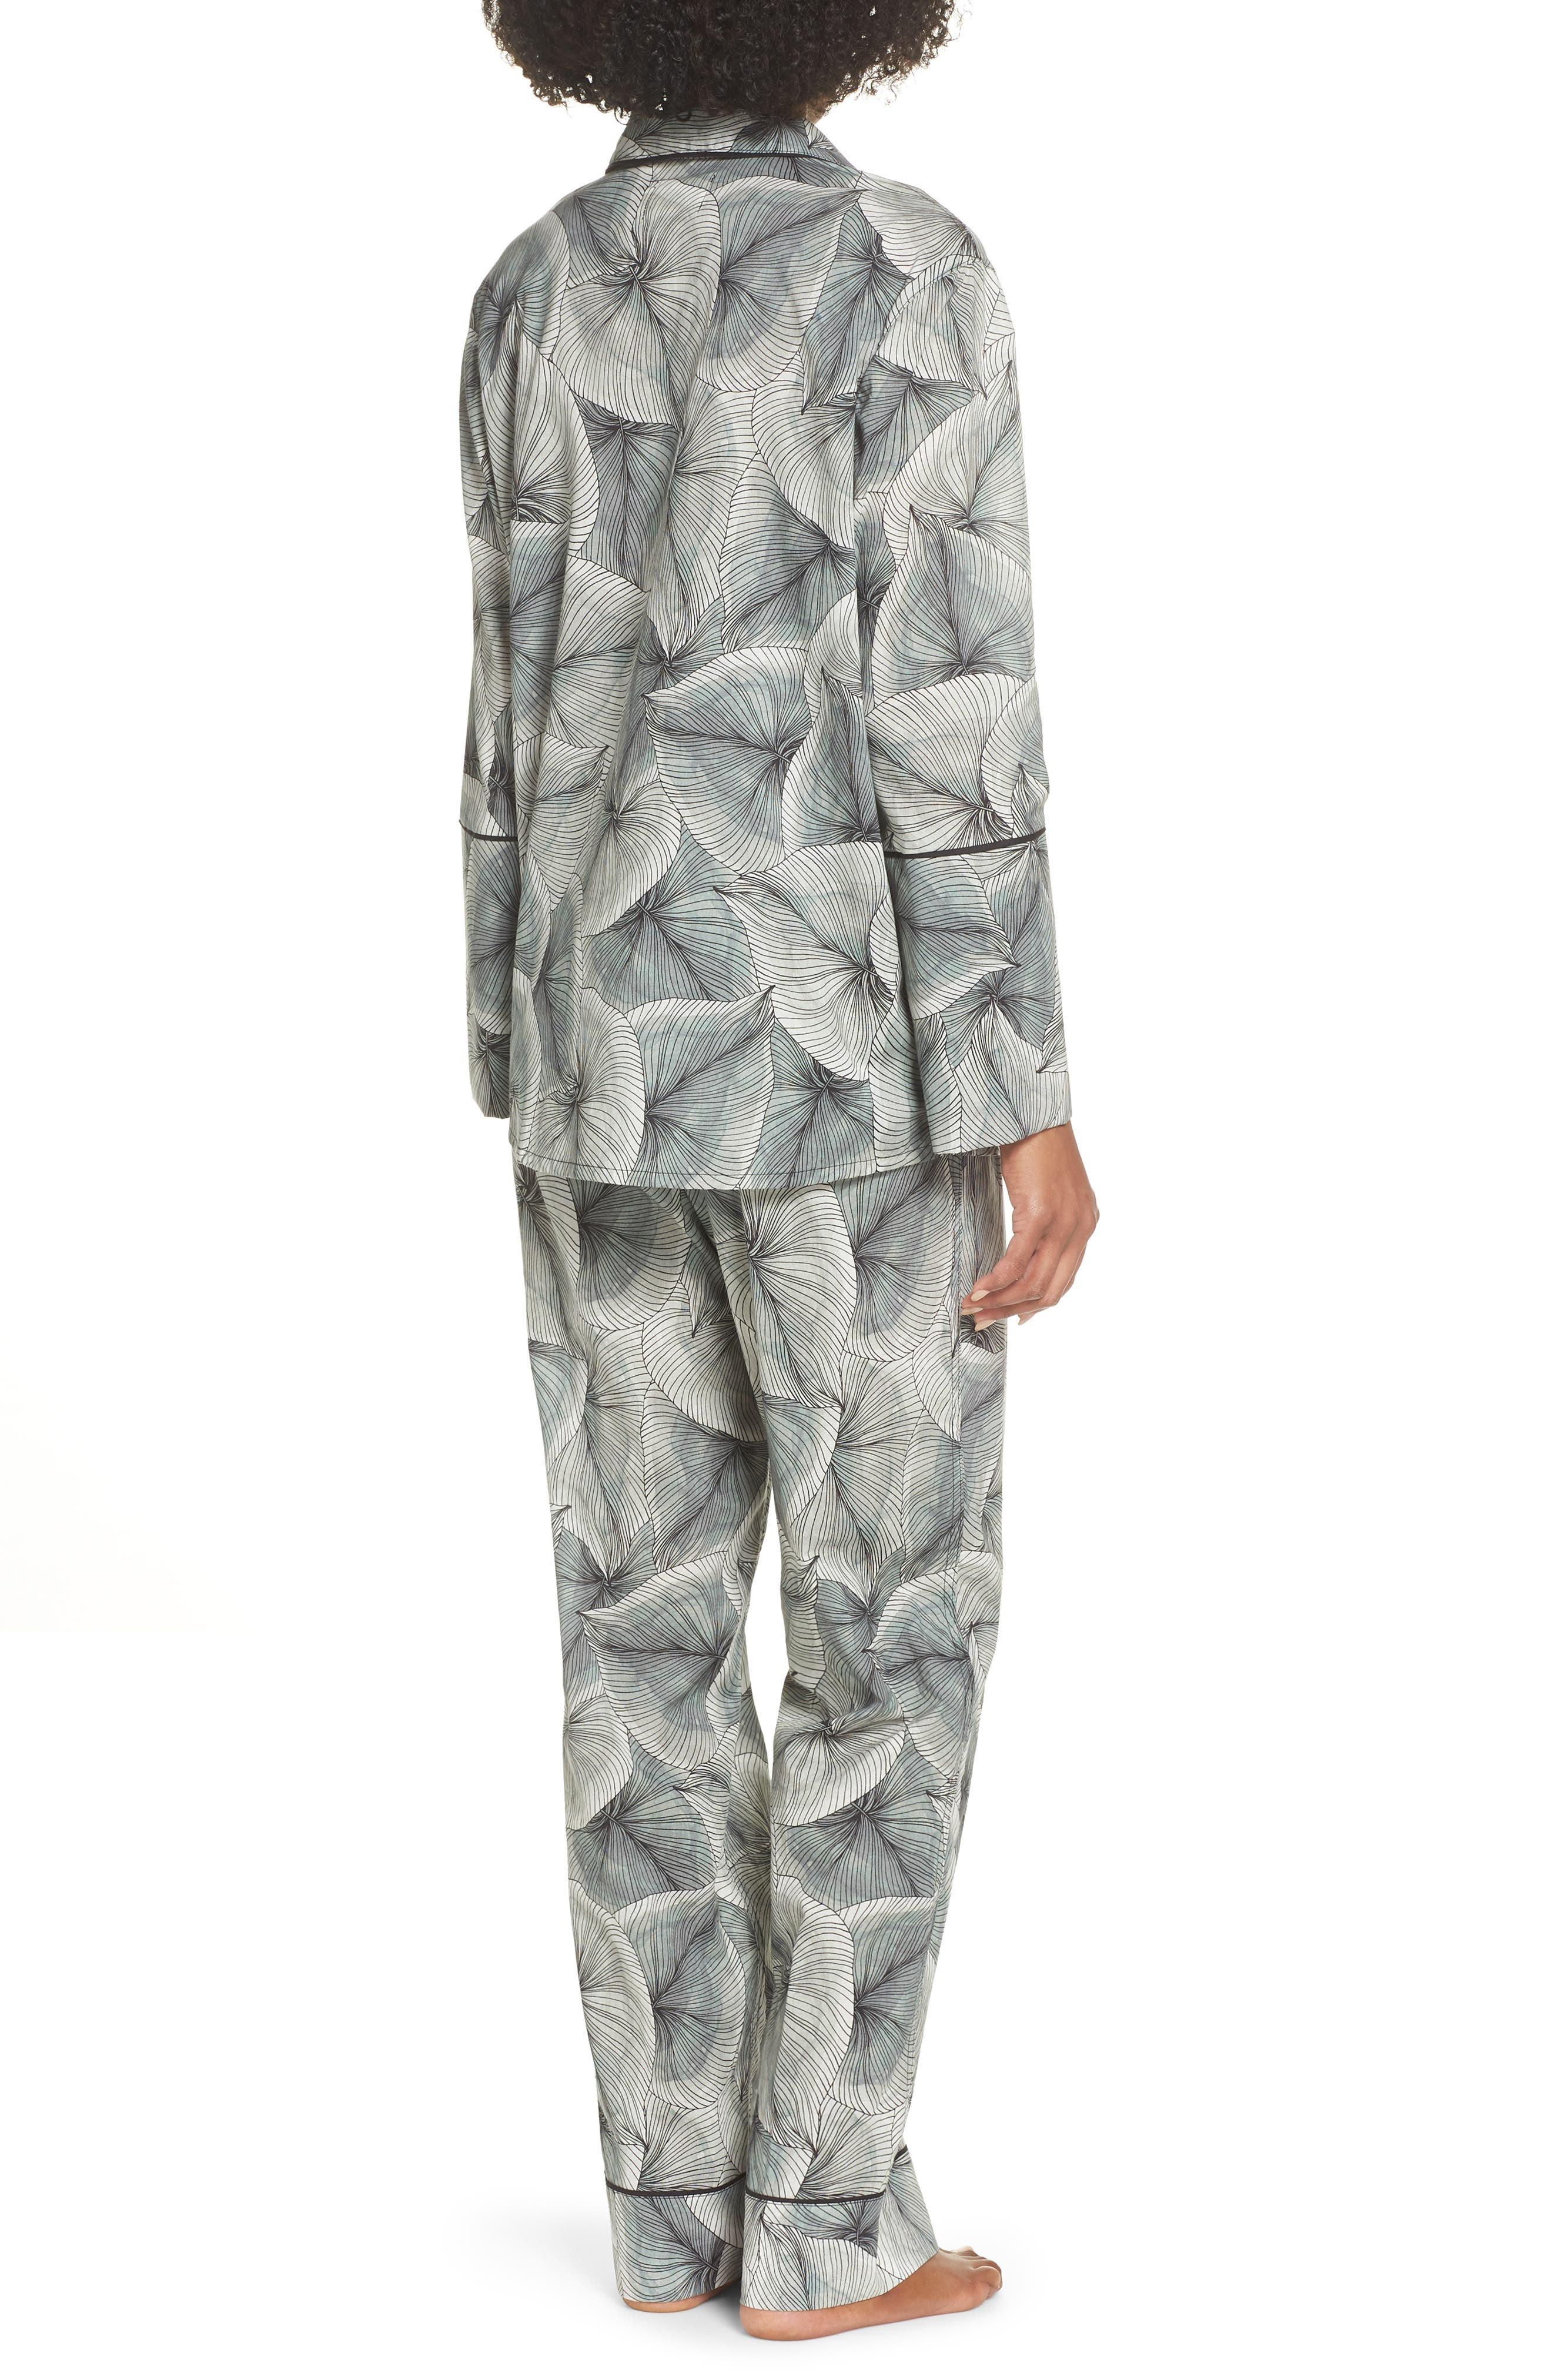 Cotton Voile Pajamas,                             Alternate thumbnail 2, color,                             LEAF PRINT